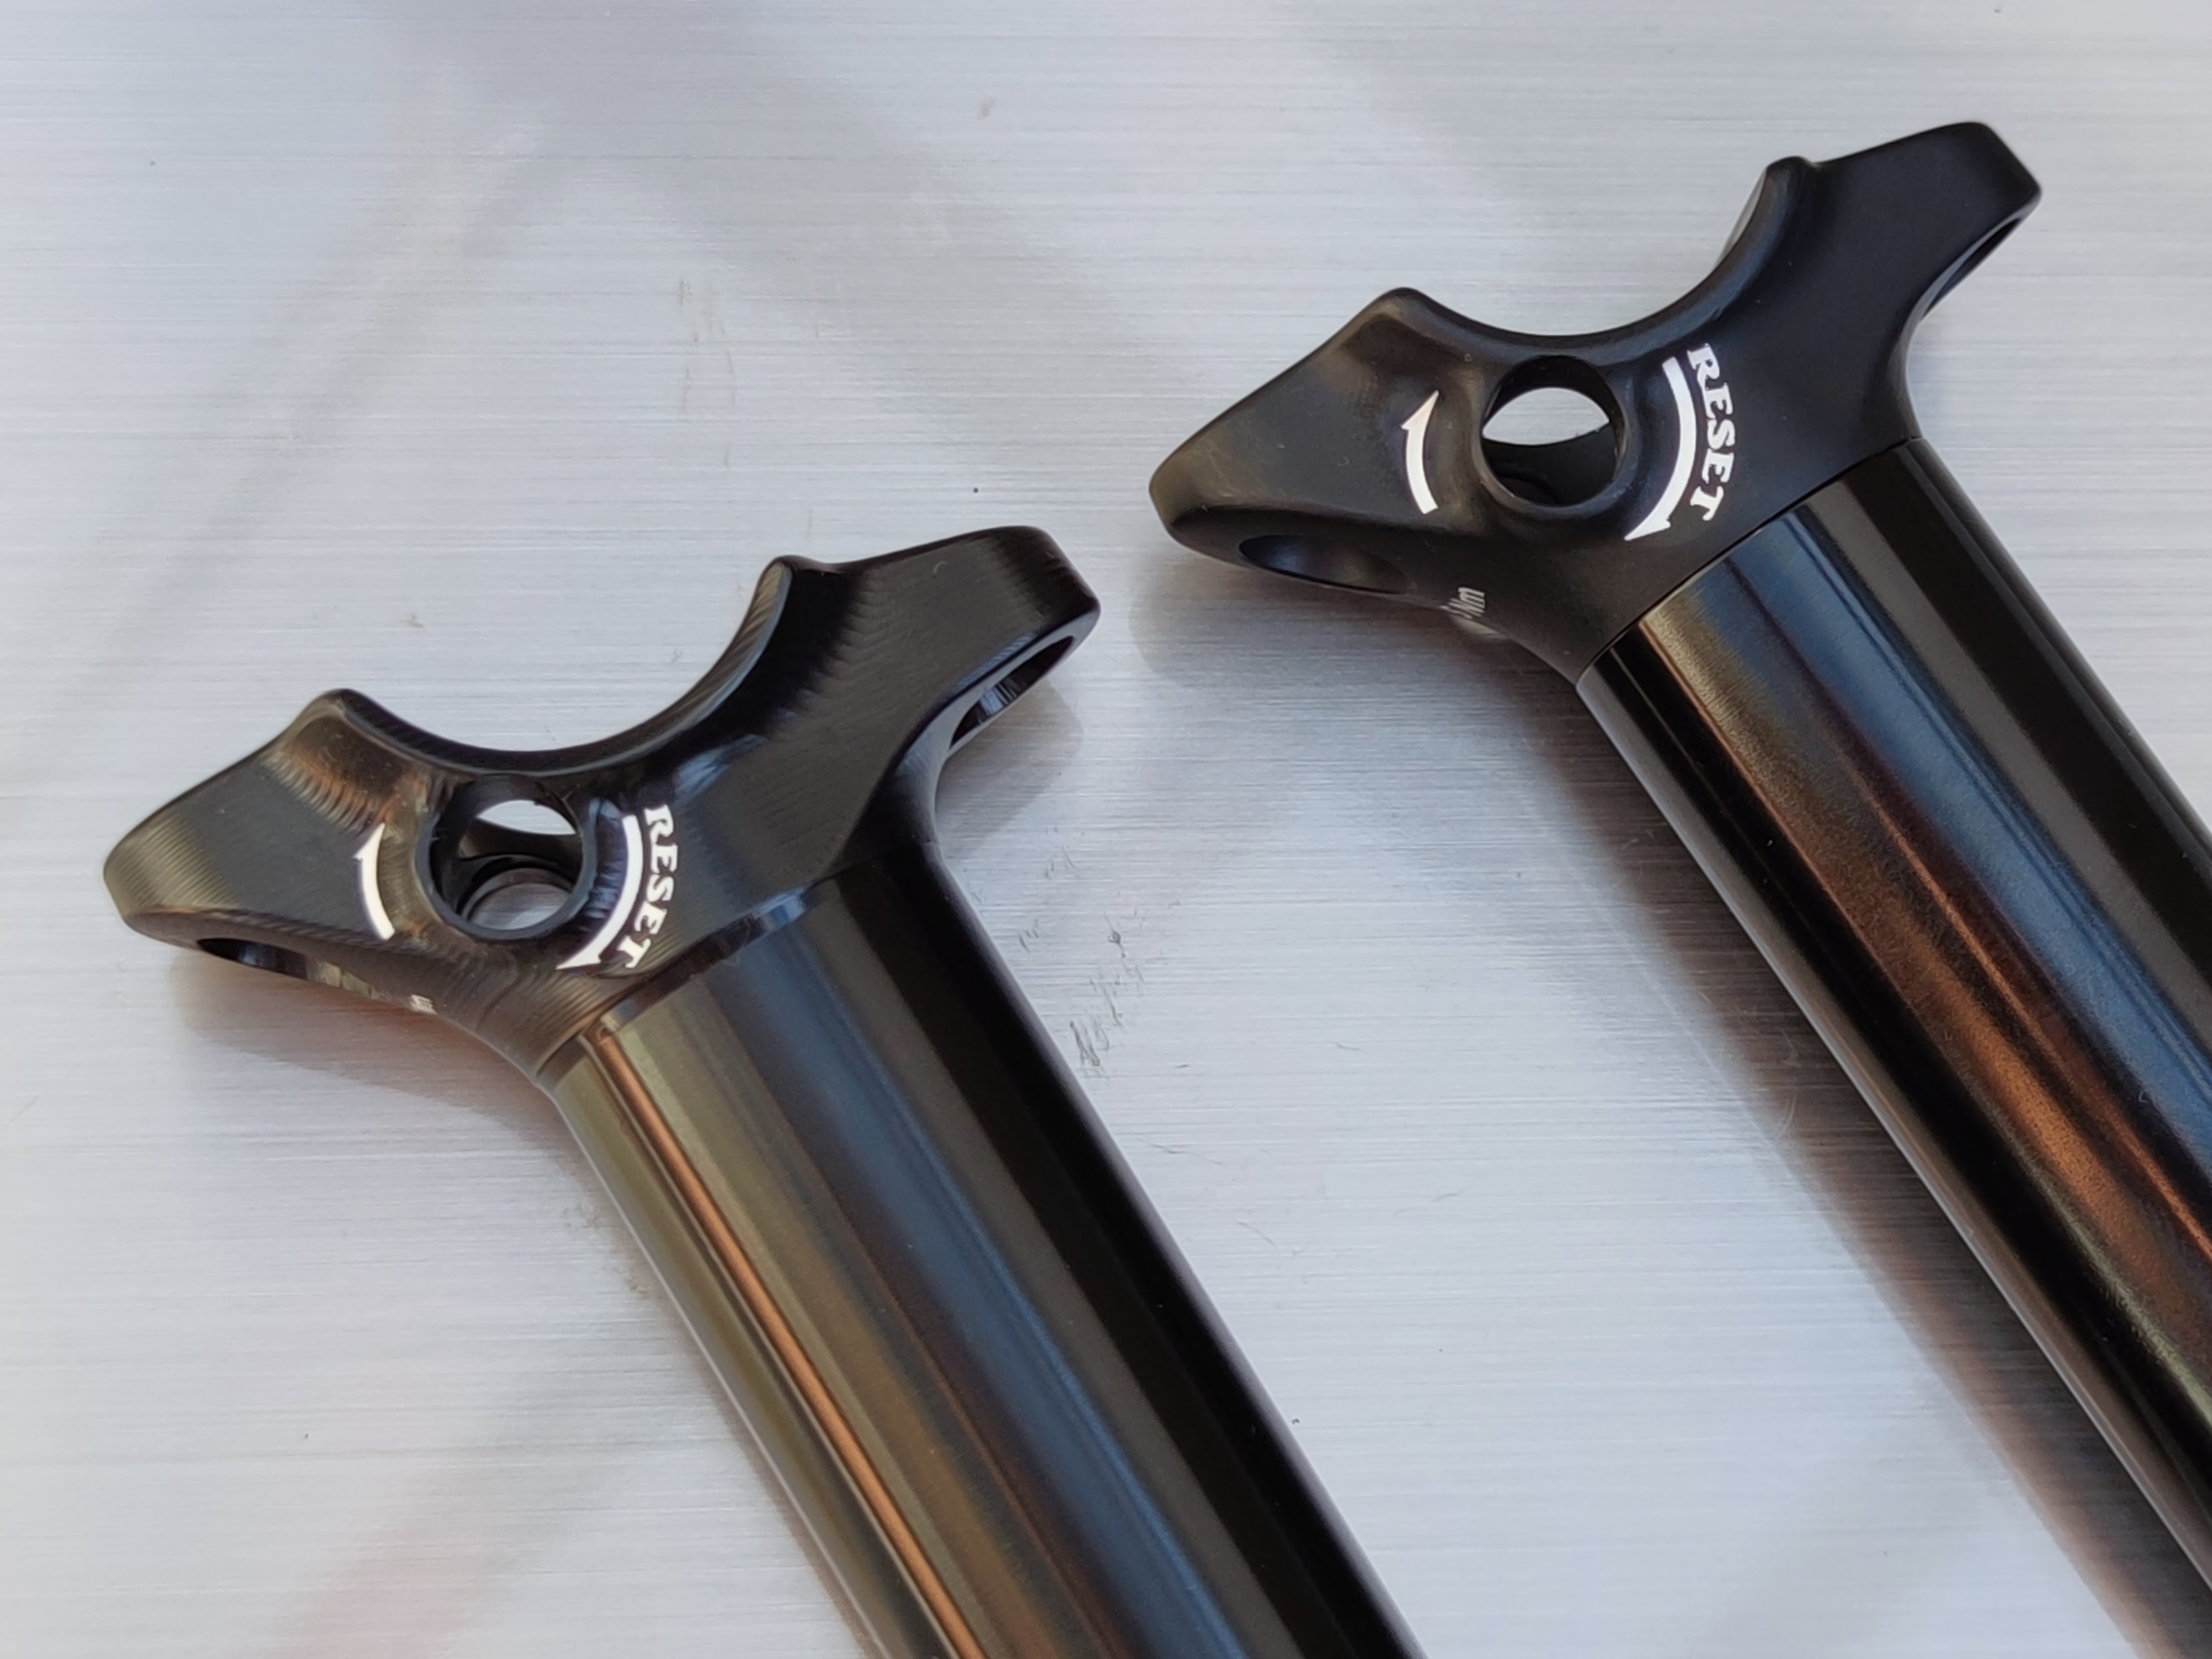 BikeYoke Revive 2.0: The one-piece Revive 2.0 upper (left) and the original two-piece Revive upper (right)